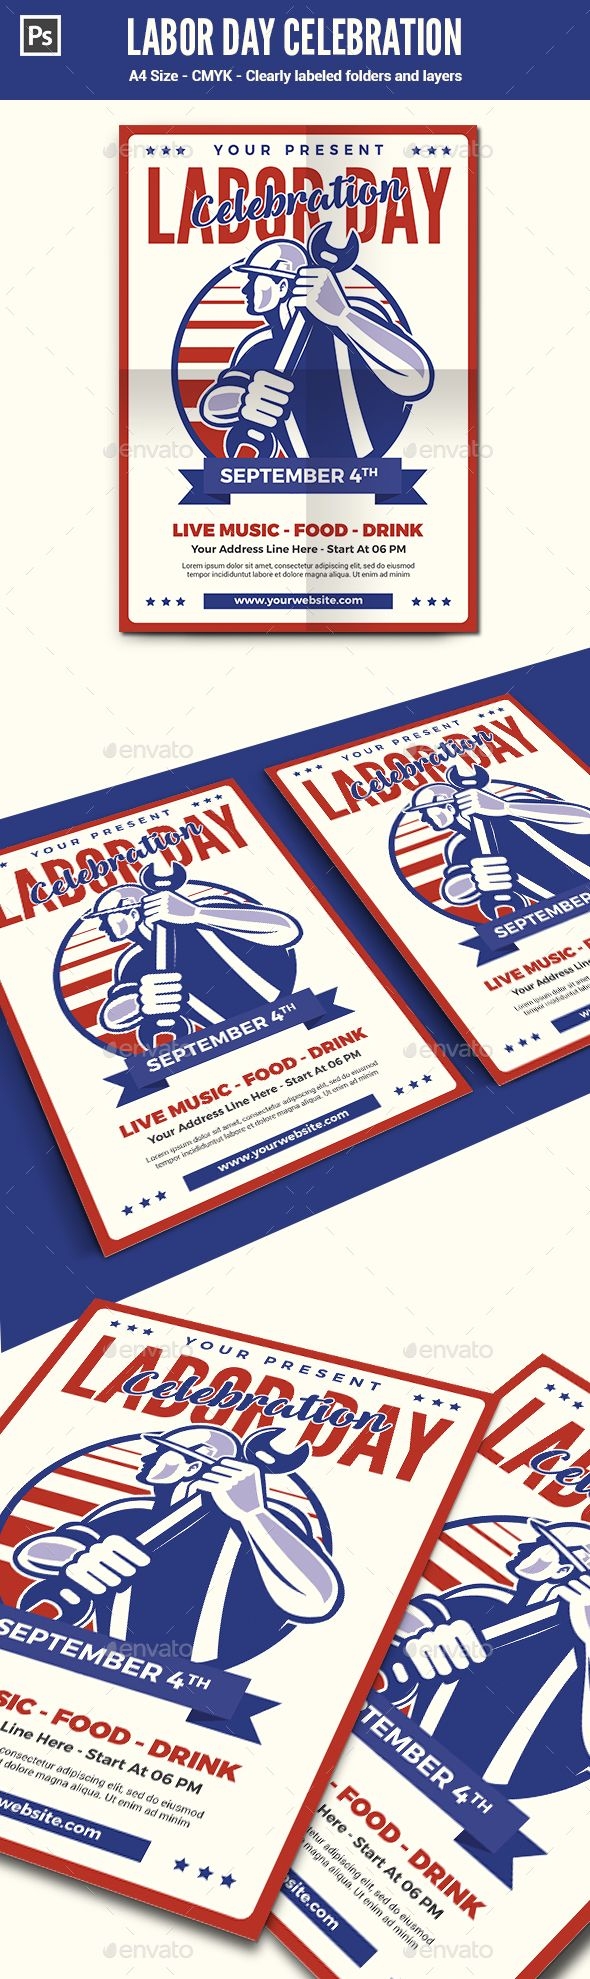 Labor Day Flyer / Poster Template | Labour, Flyer template and Fonts